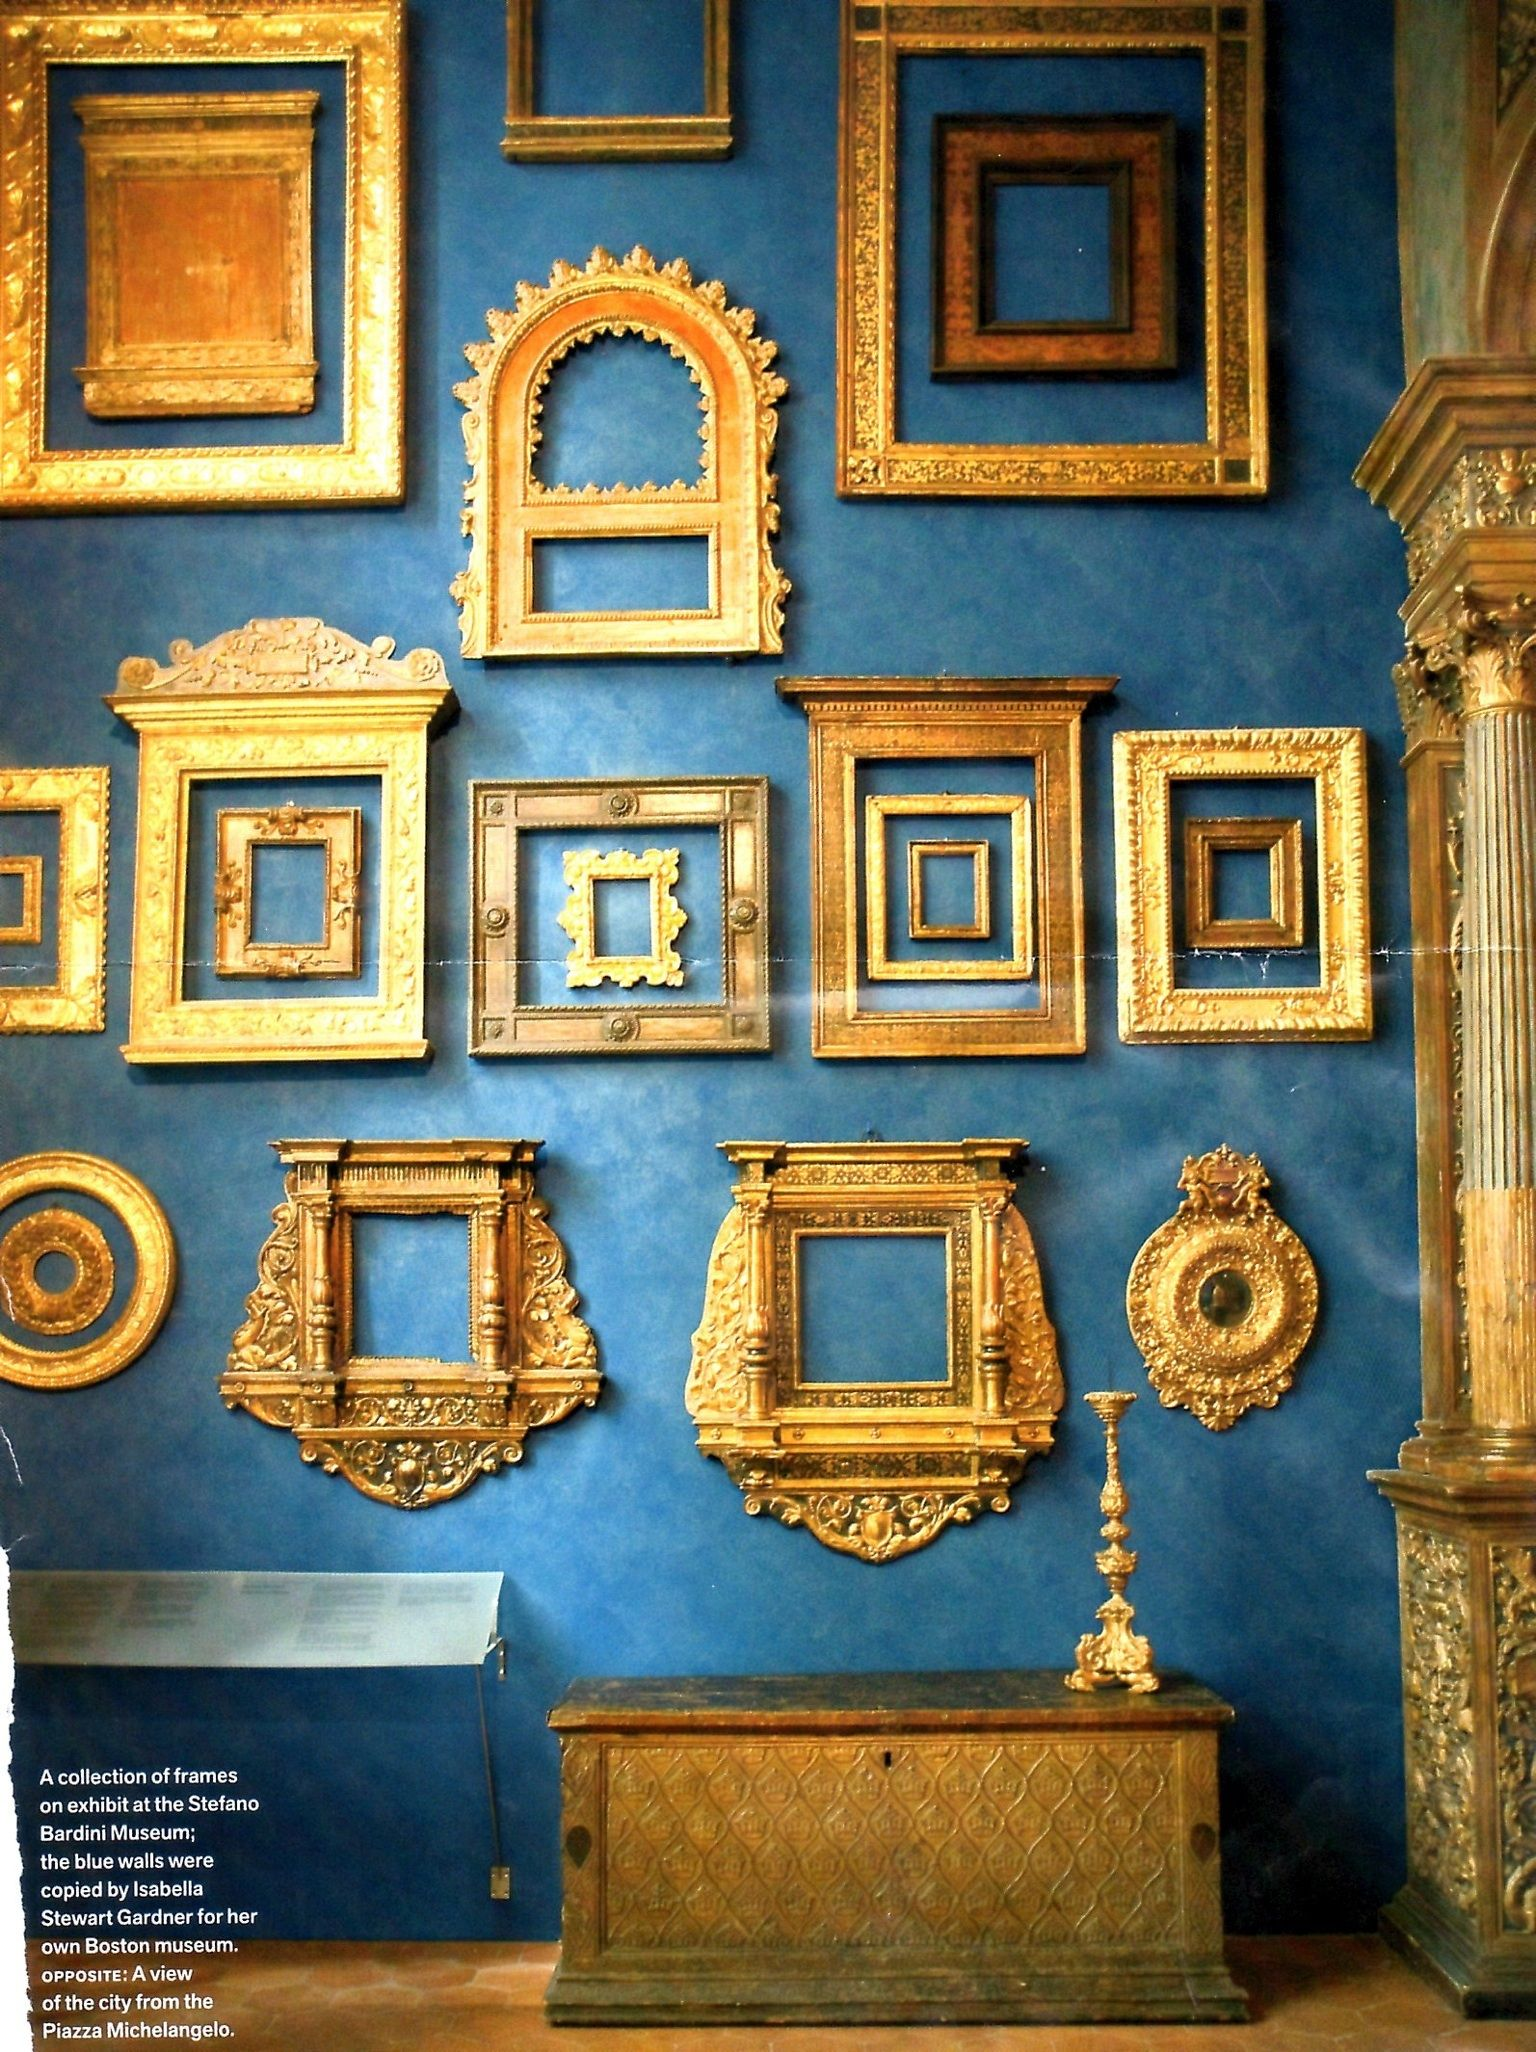 A Collection Of Frames On Exhibit At The Stefano Bardini